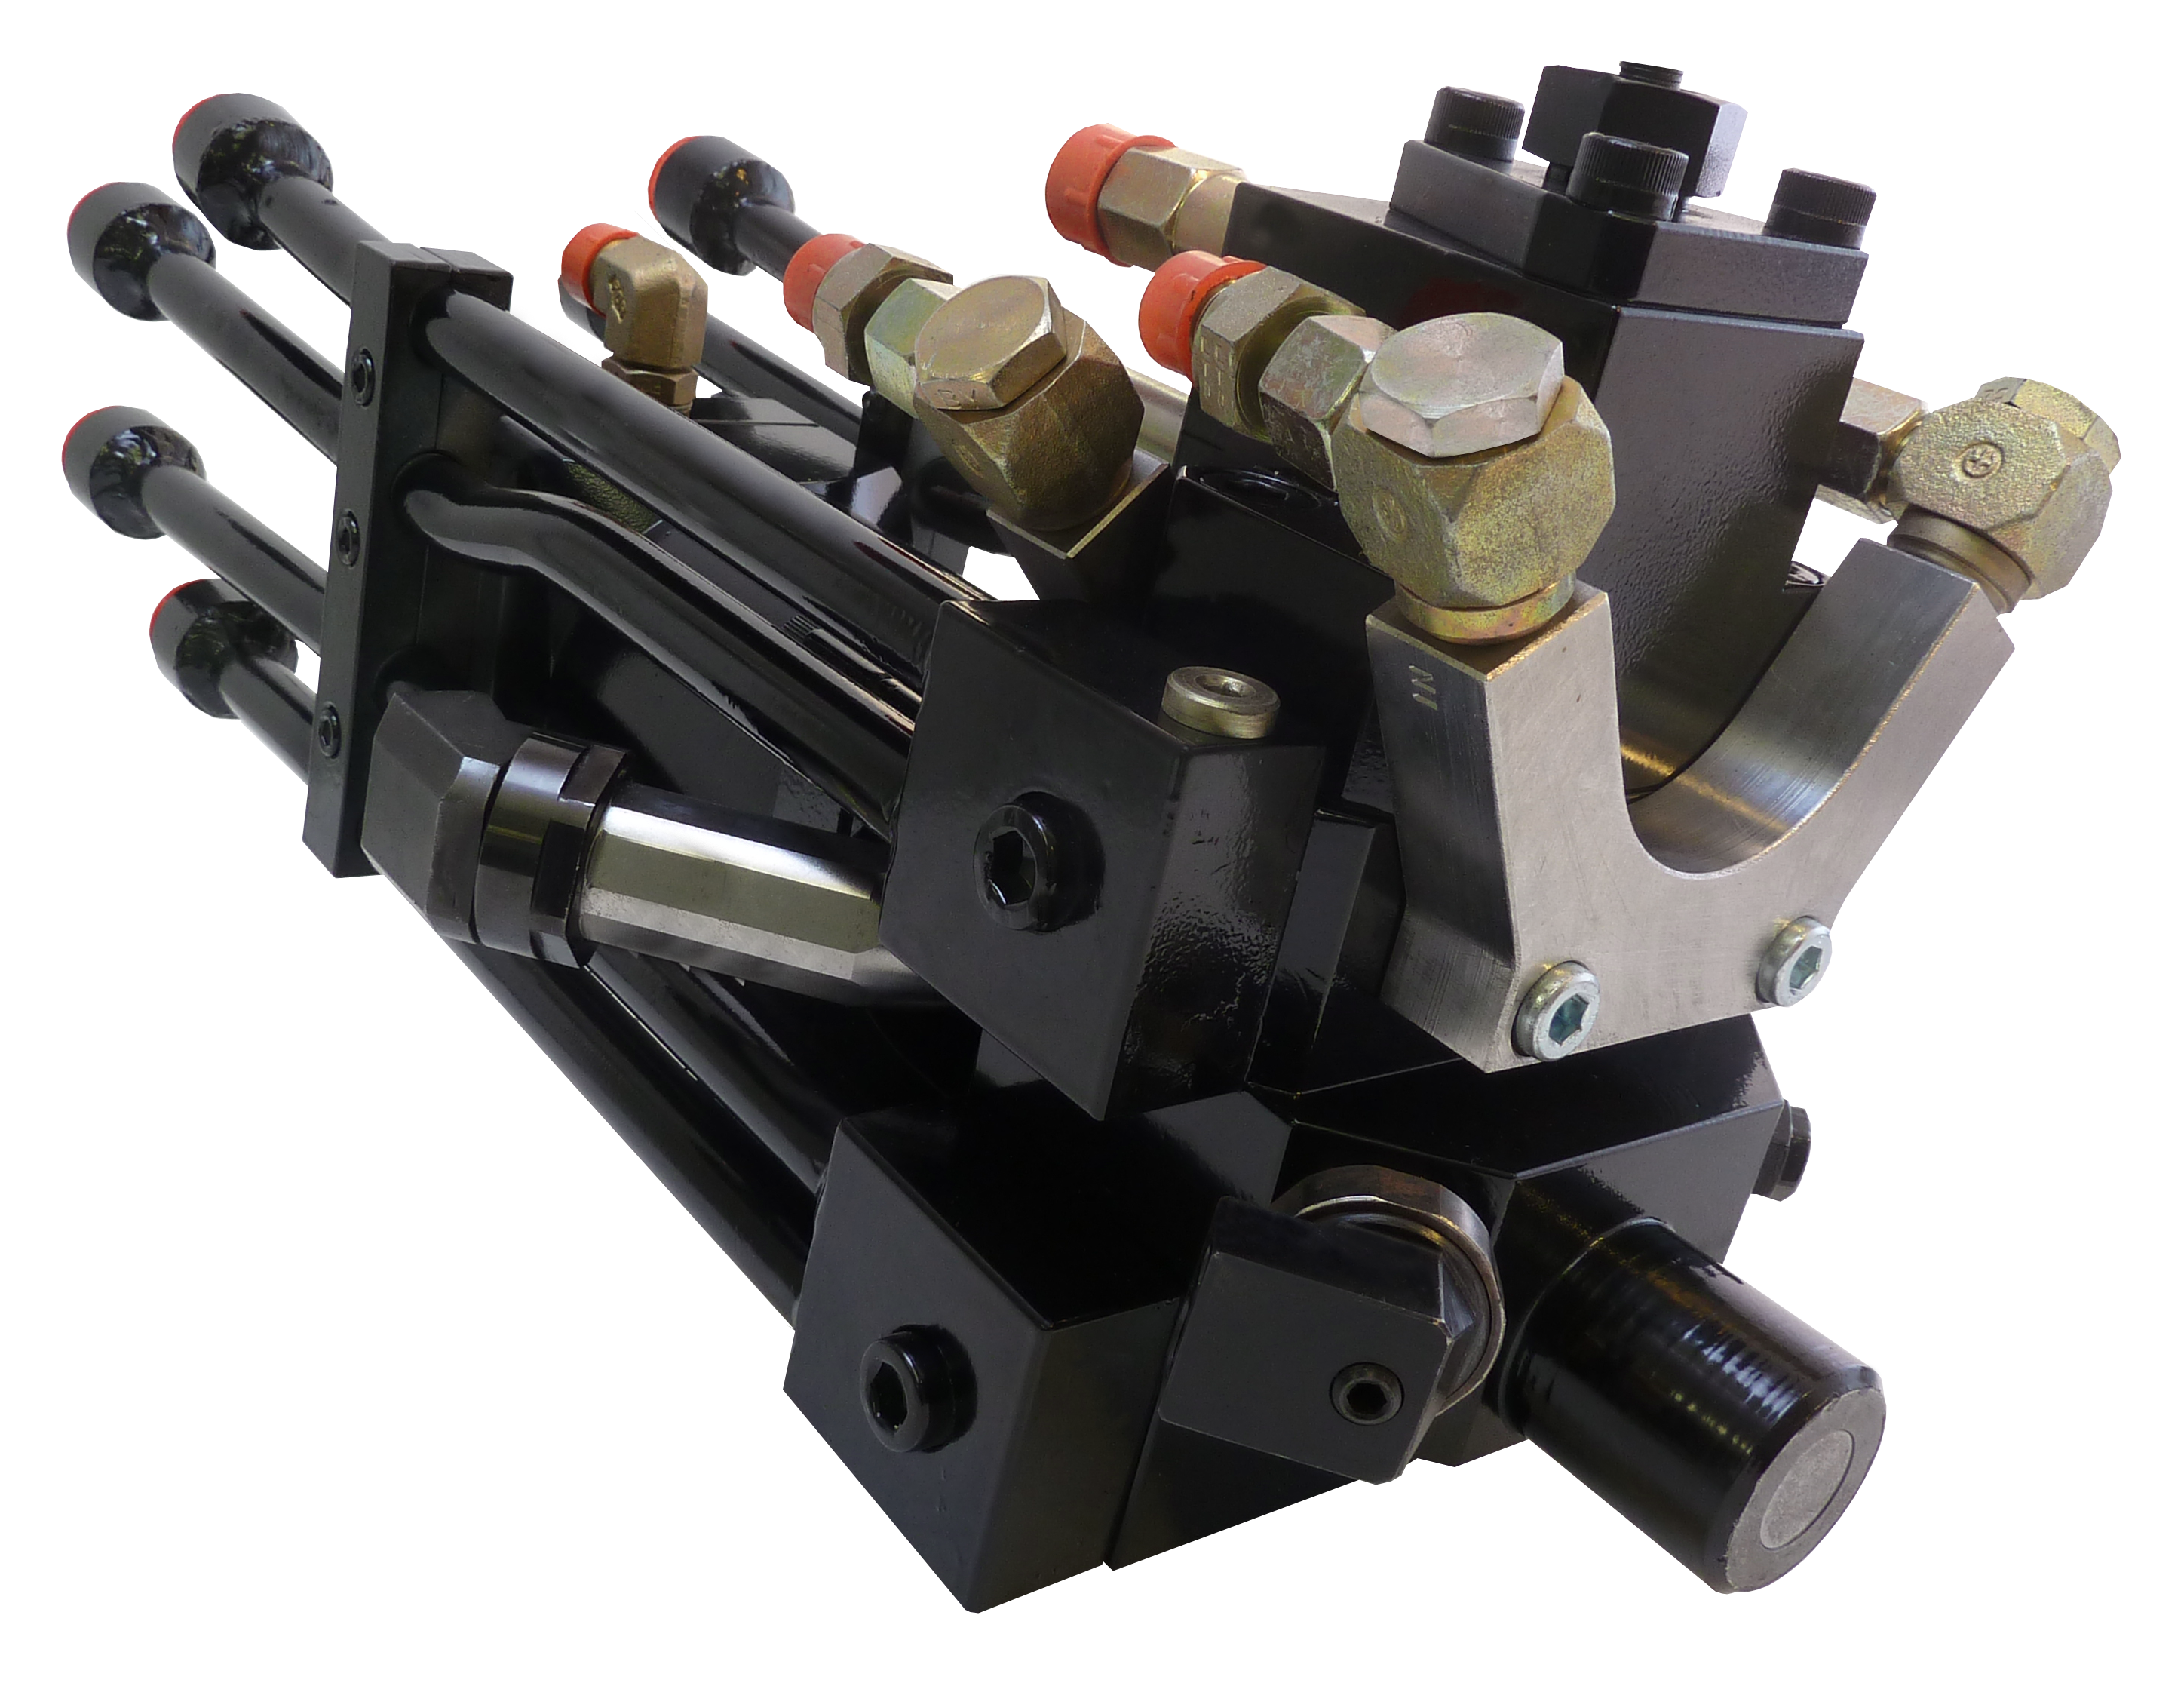 The AX22 high pressure multi-component mixing head for the automotive seats industry (Source: Cannon)